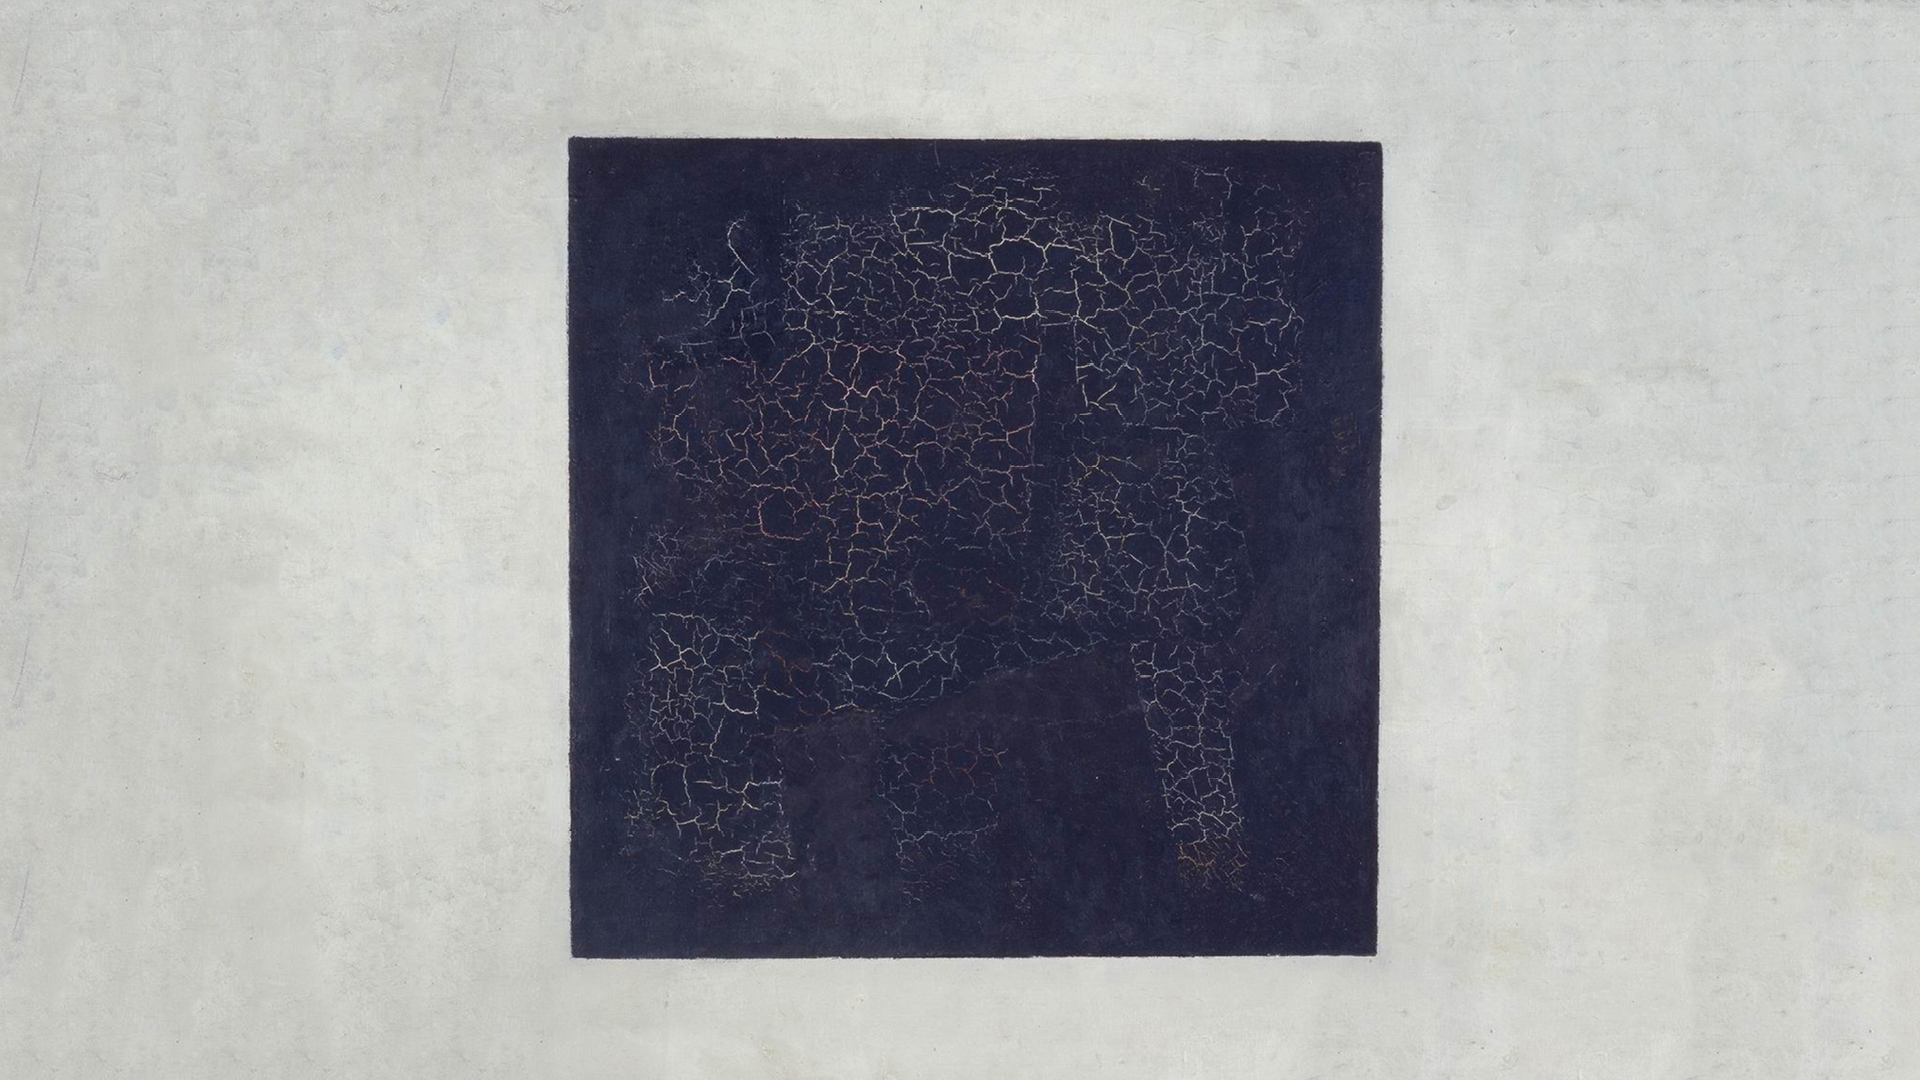 Kazimir Malevich, 1915, Black Suprematic Square, oil on linen canvas, 79.5 x 79.5 cm, Tretyakov Gallery, Moscow | Black Suprematic Square | Kazimir Malevich | STIRworld